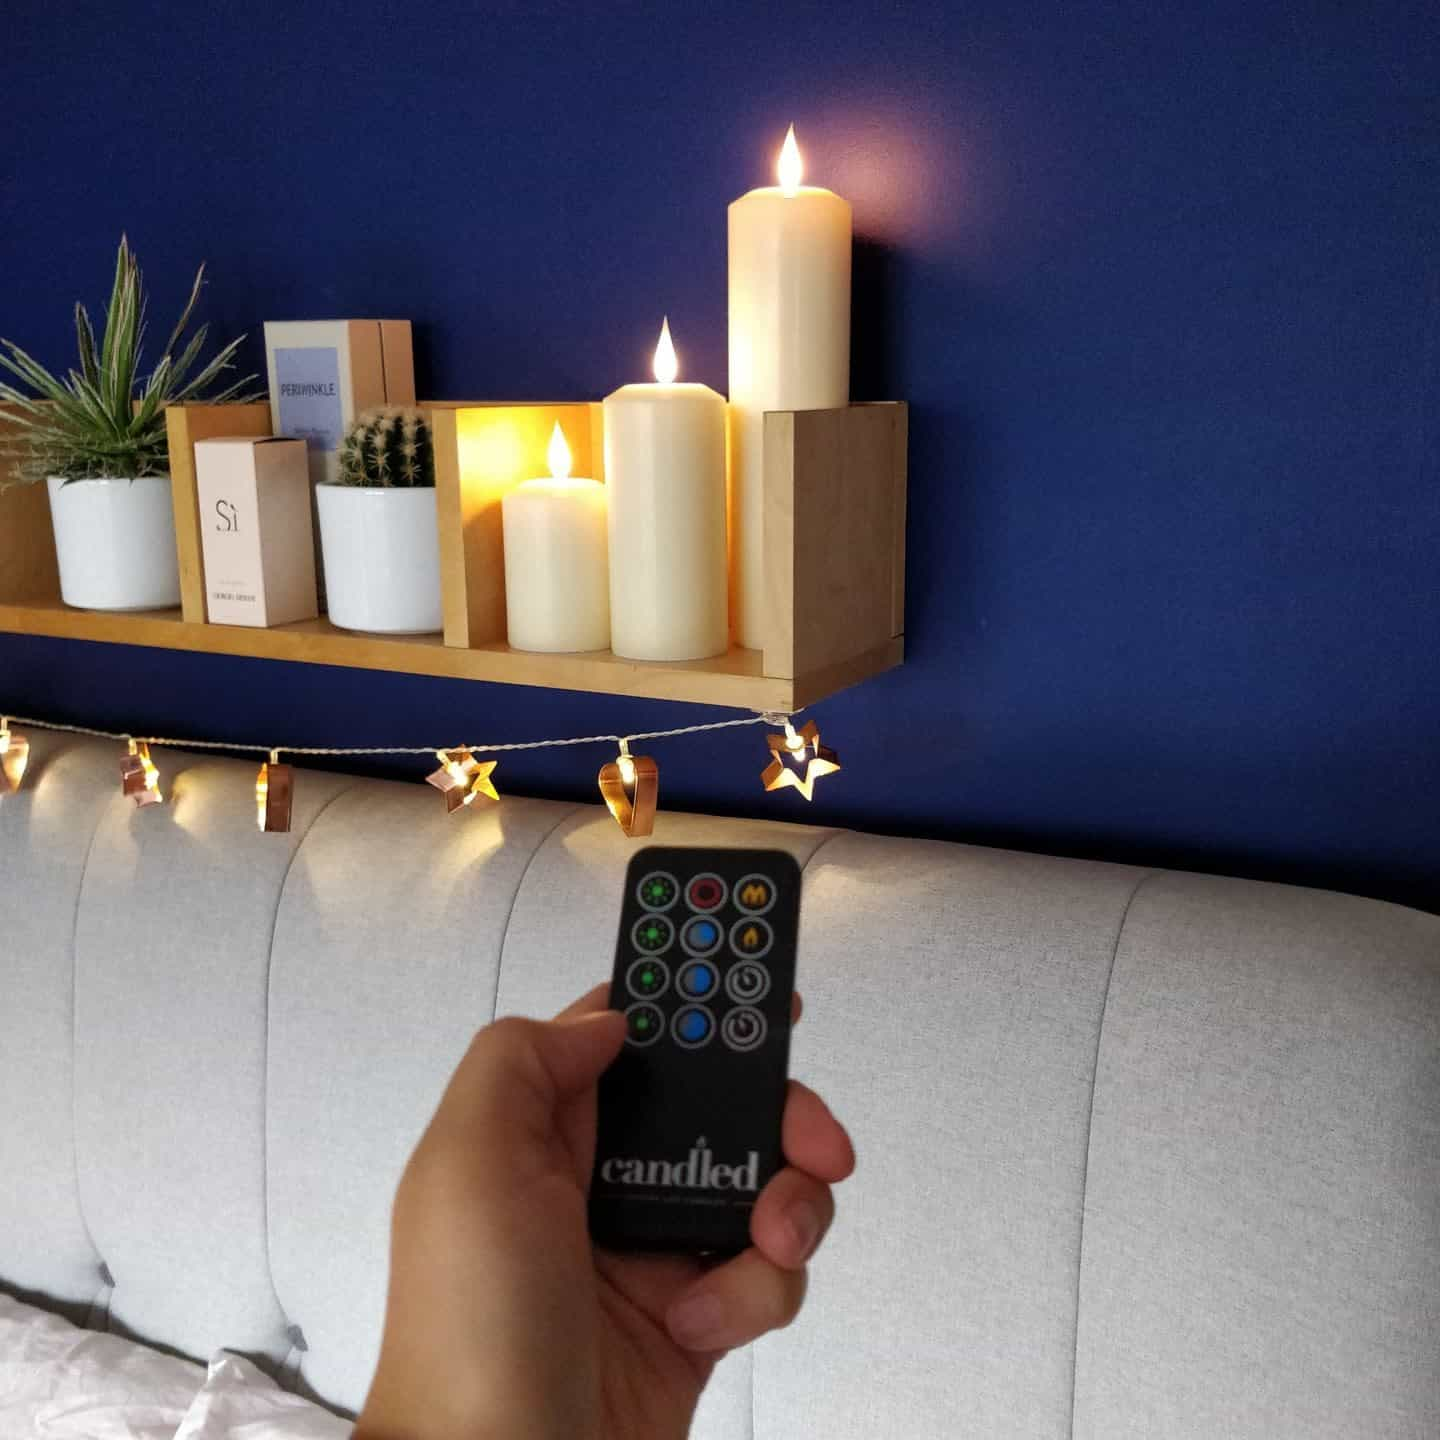 Remote Control realistic LED candles from Candled on a bedroom shelf 6